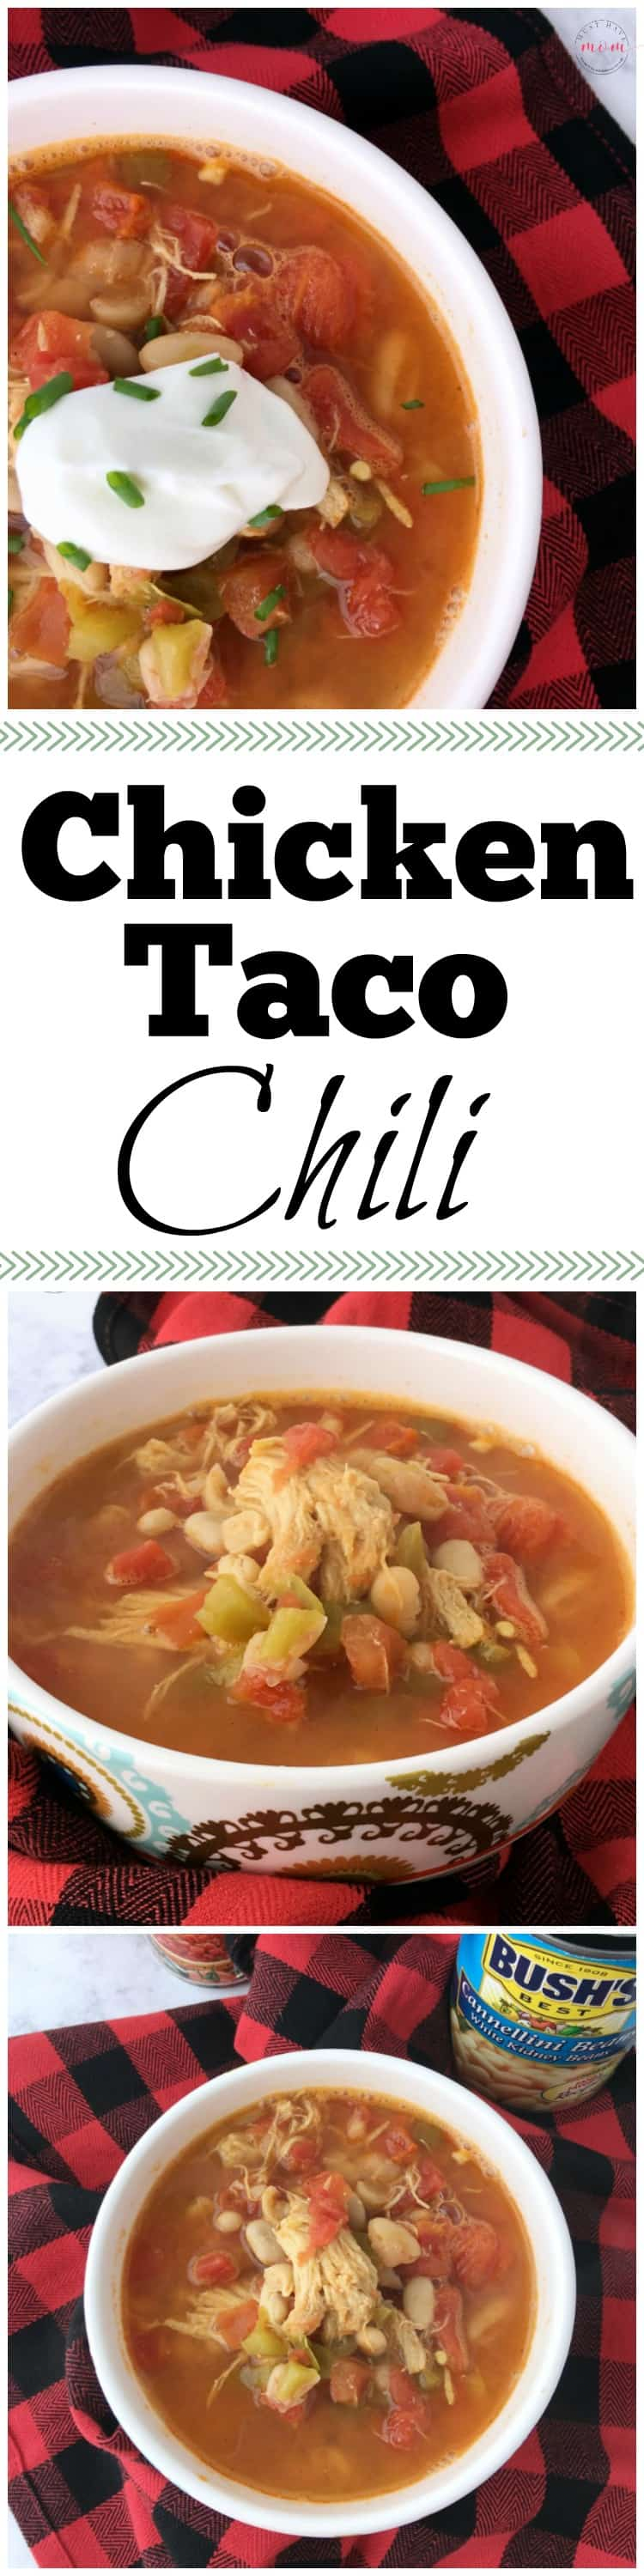 Chicken Taco Chili Recipe! Like chicken tacos in soup form! Easy dinner recipes